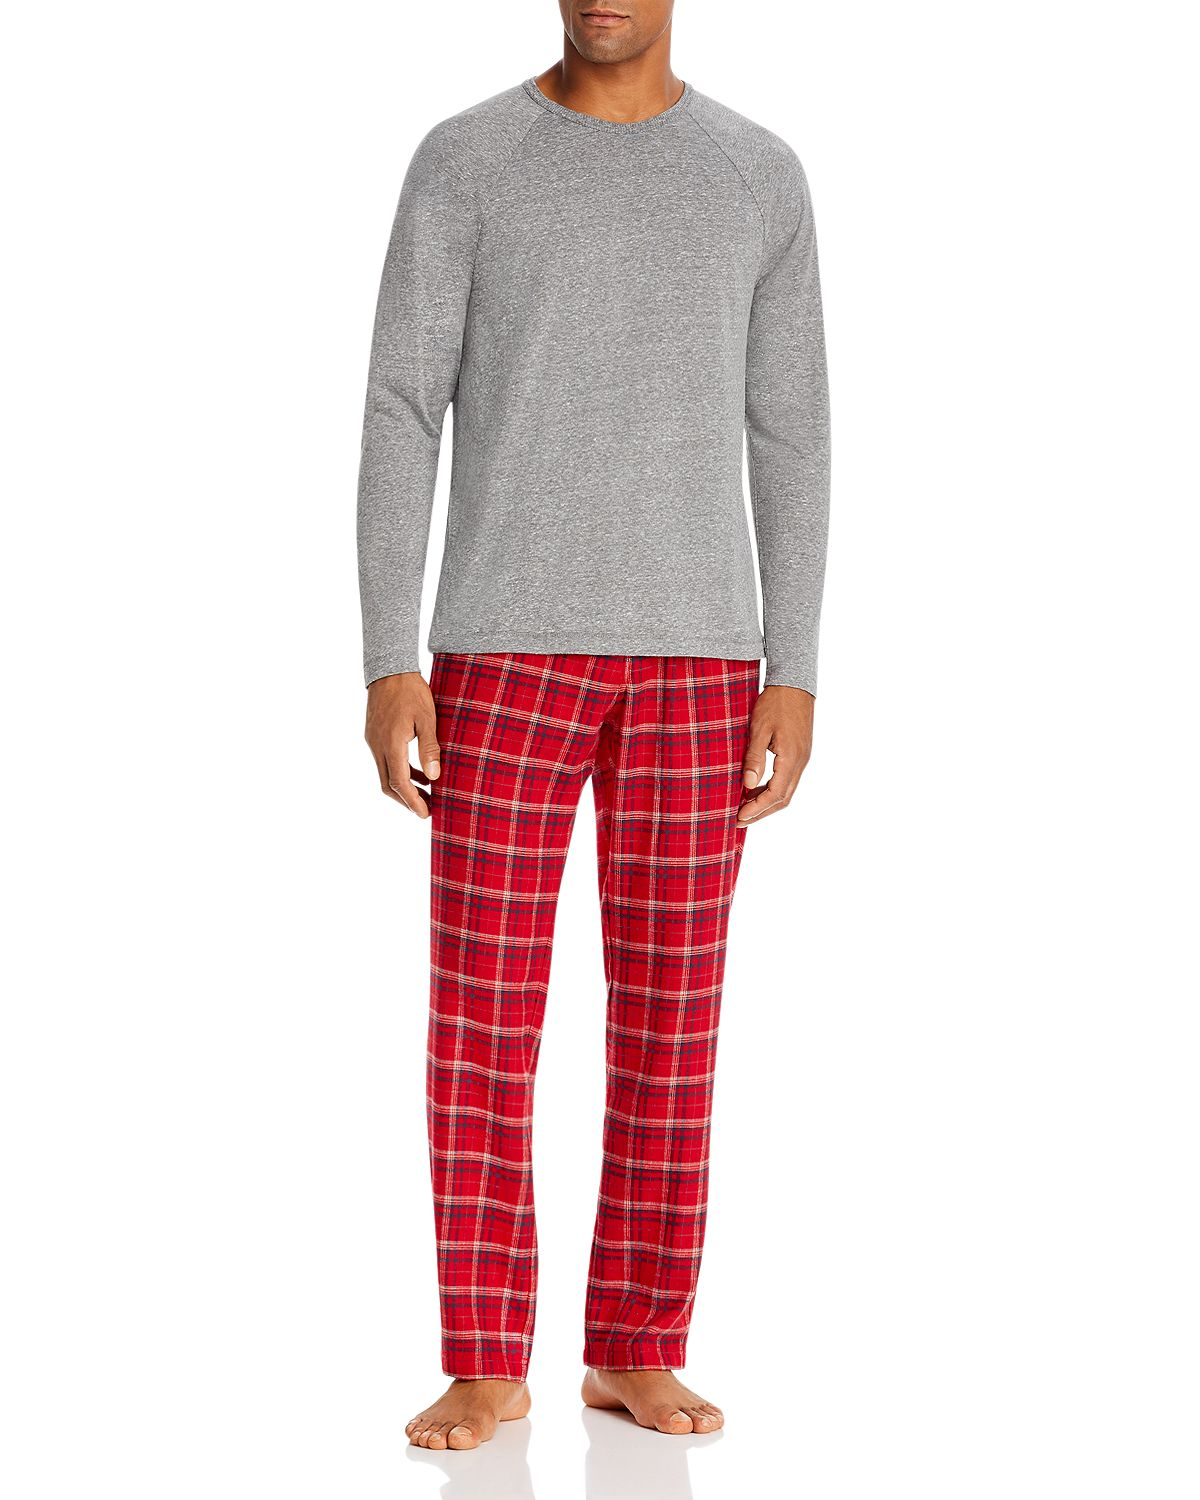 Ugg steiner Pajama Gift Set Gray/Red Plaid